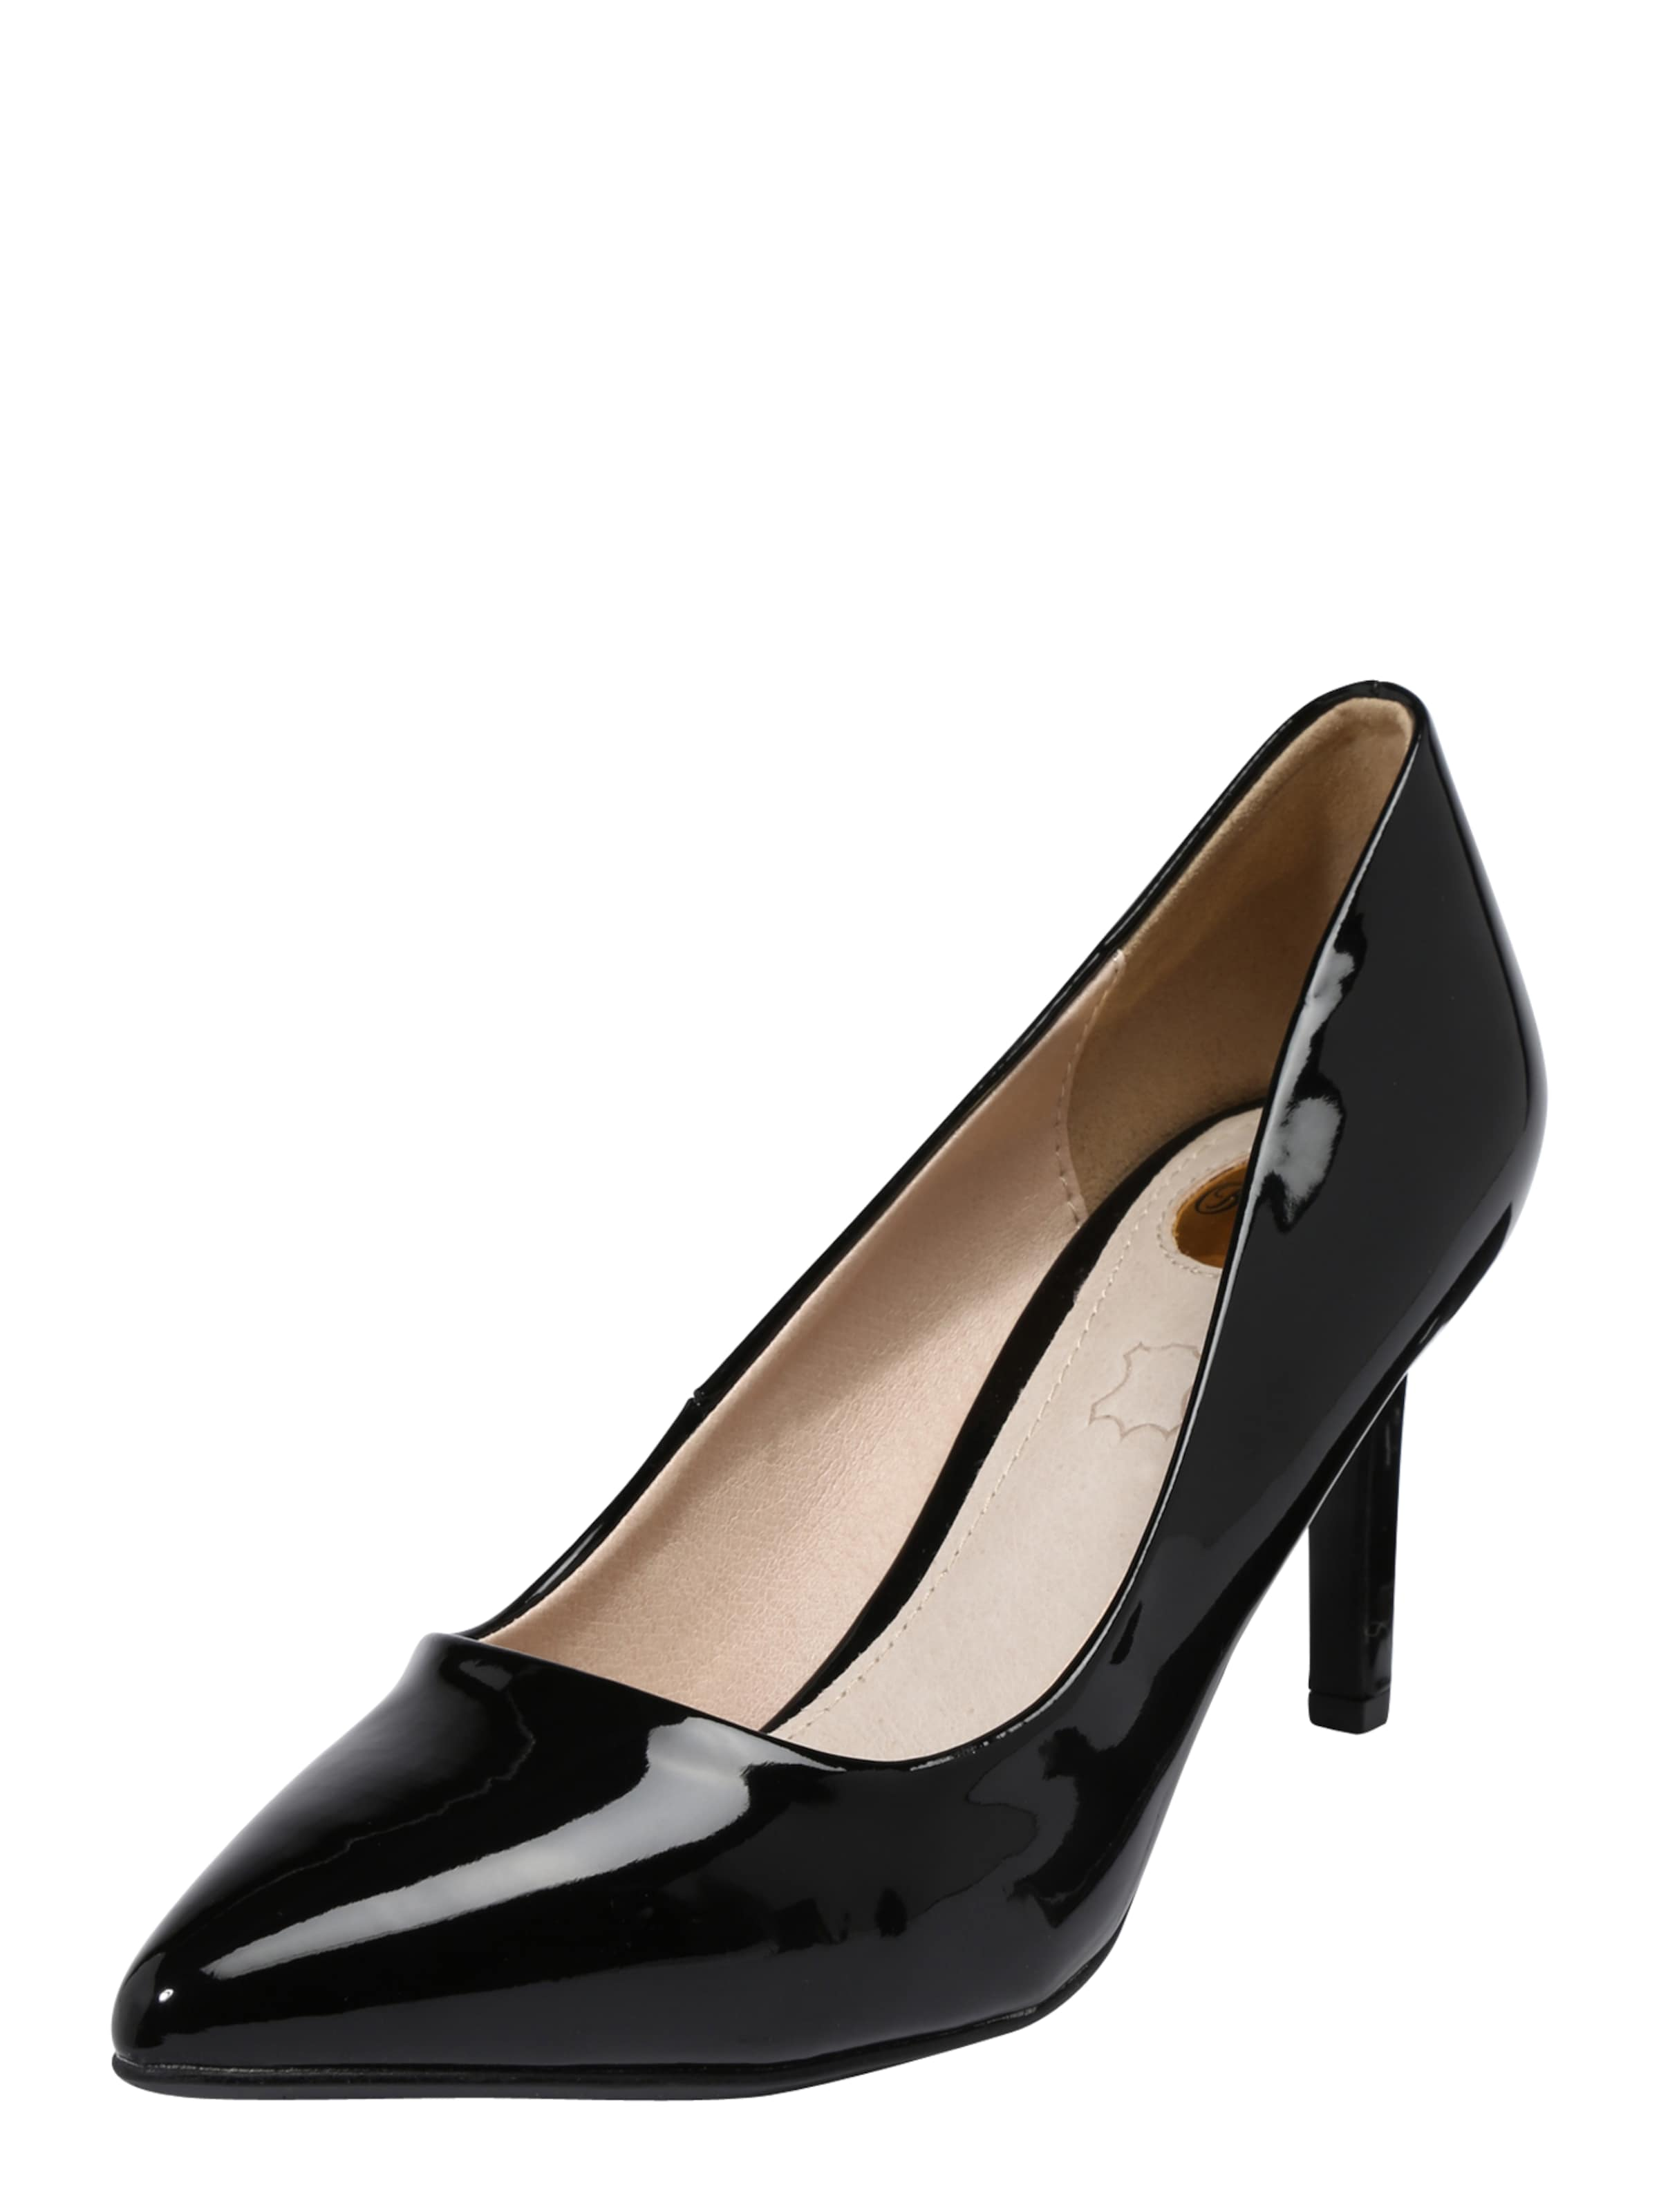 'alivia' Buffalo Pumps 'alivia' Schwarz In 'alivia' In Schwarz Pumps Buffalo Pumps Buffalo lF1JcKT